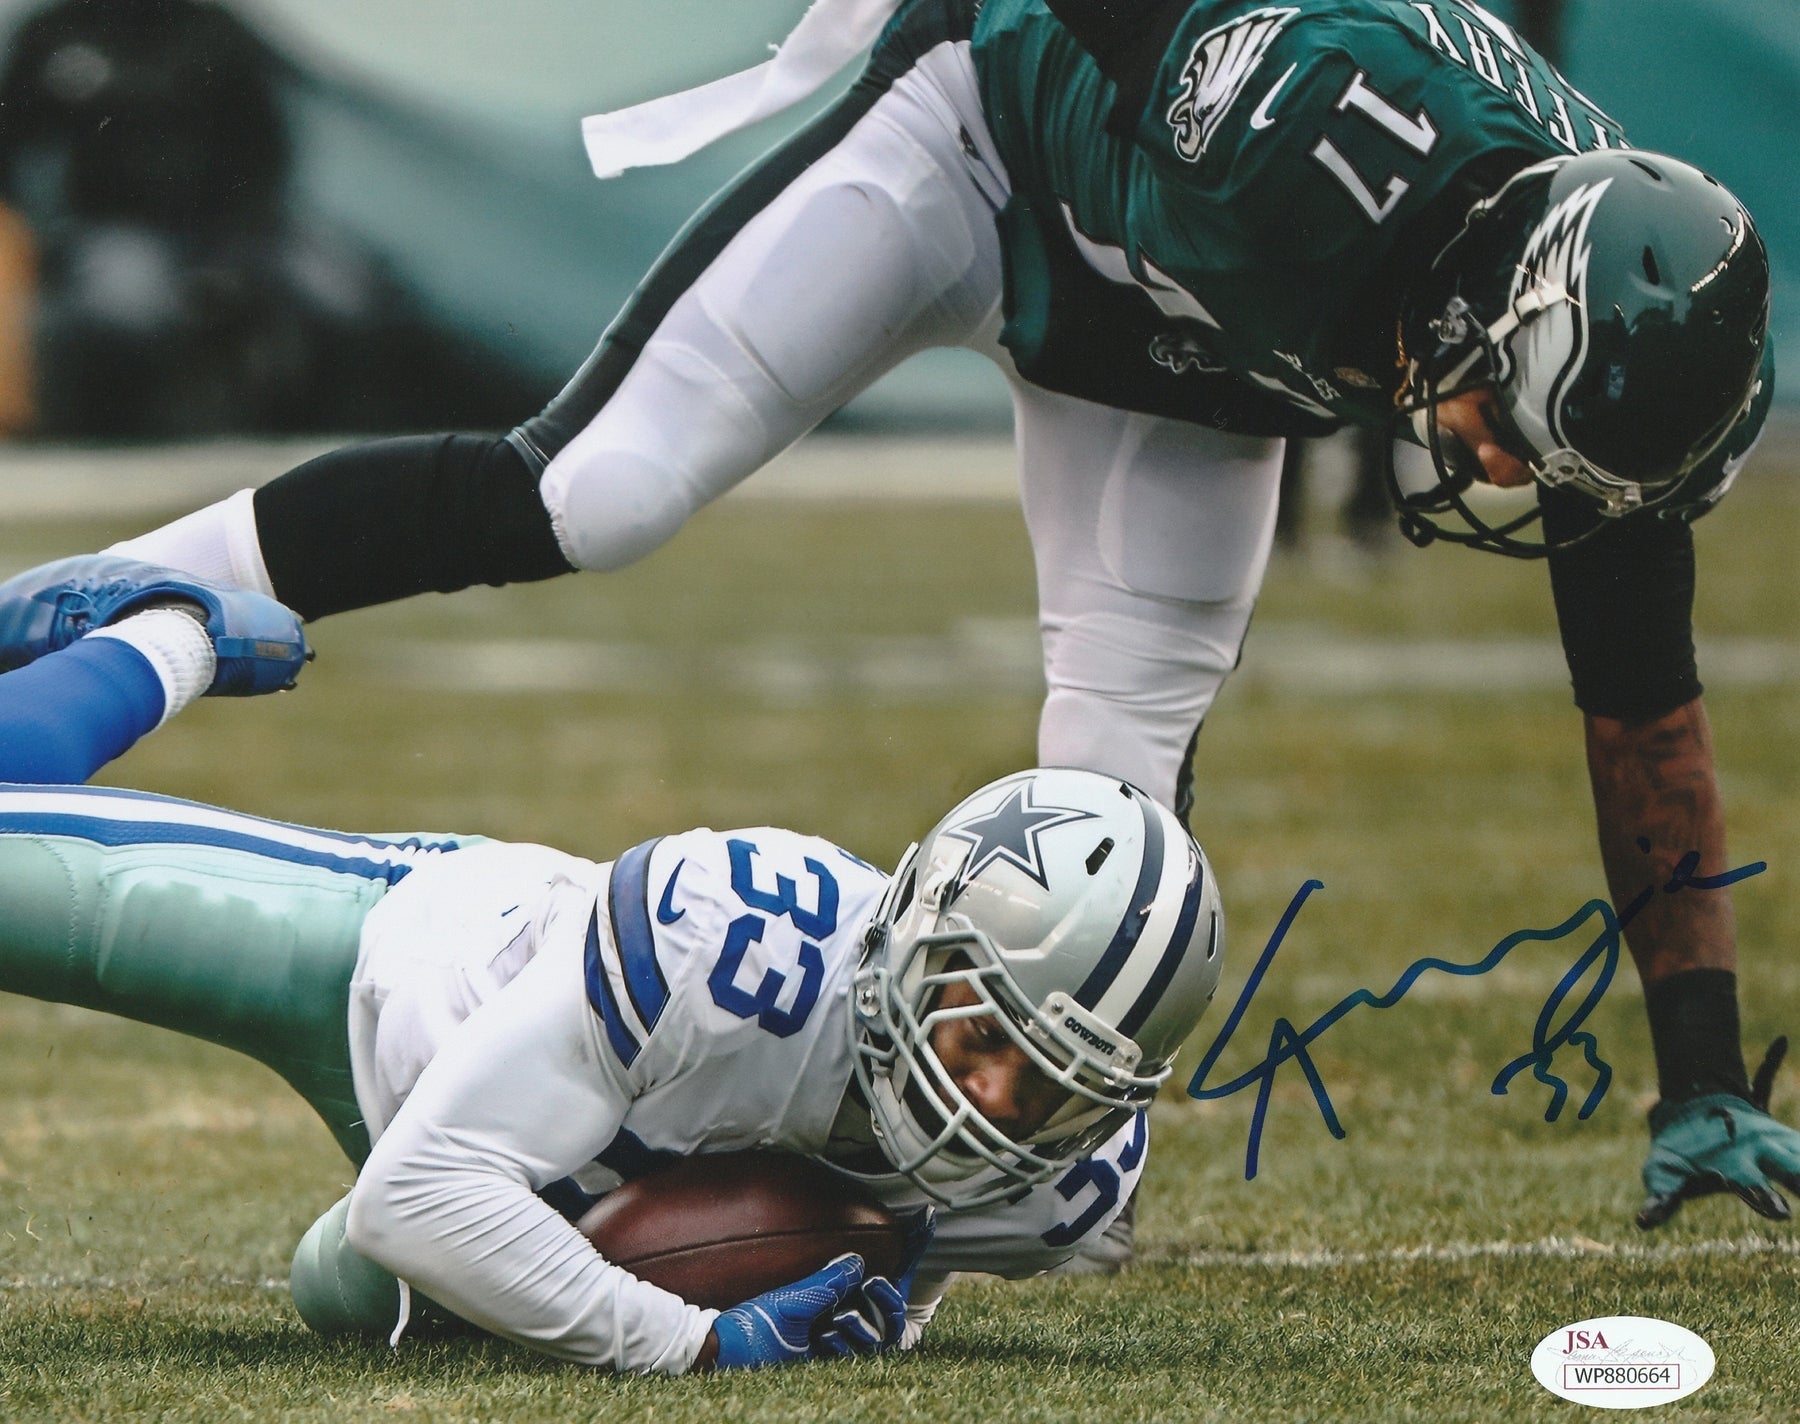 Chidobe Awuzie Autograph 8x10 Photo Dallas Cowboys Signed JSA COA 3